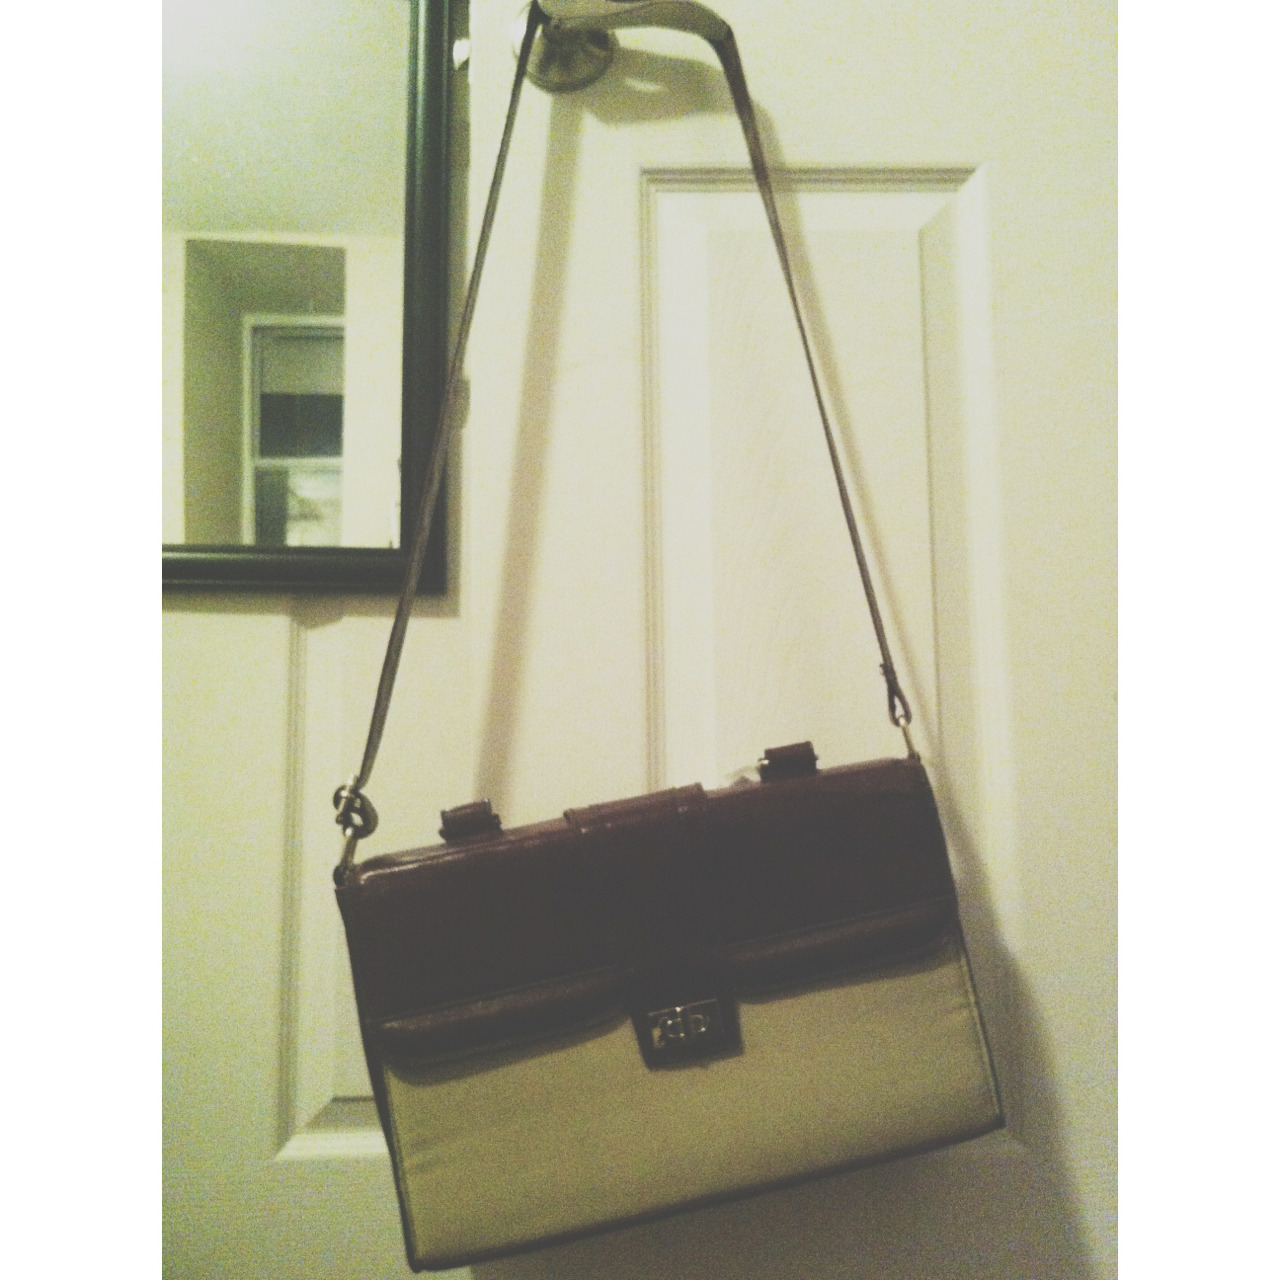 This was the biggest steal today. A $70 Topshop bag marked down to $48, marked down again to $32, and then marked down once more with a student card for a grand total of $19!!!!